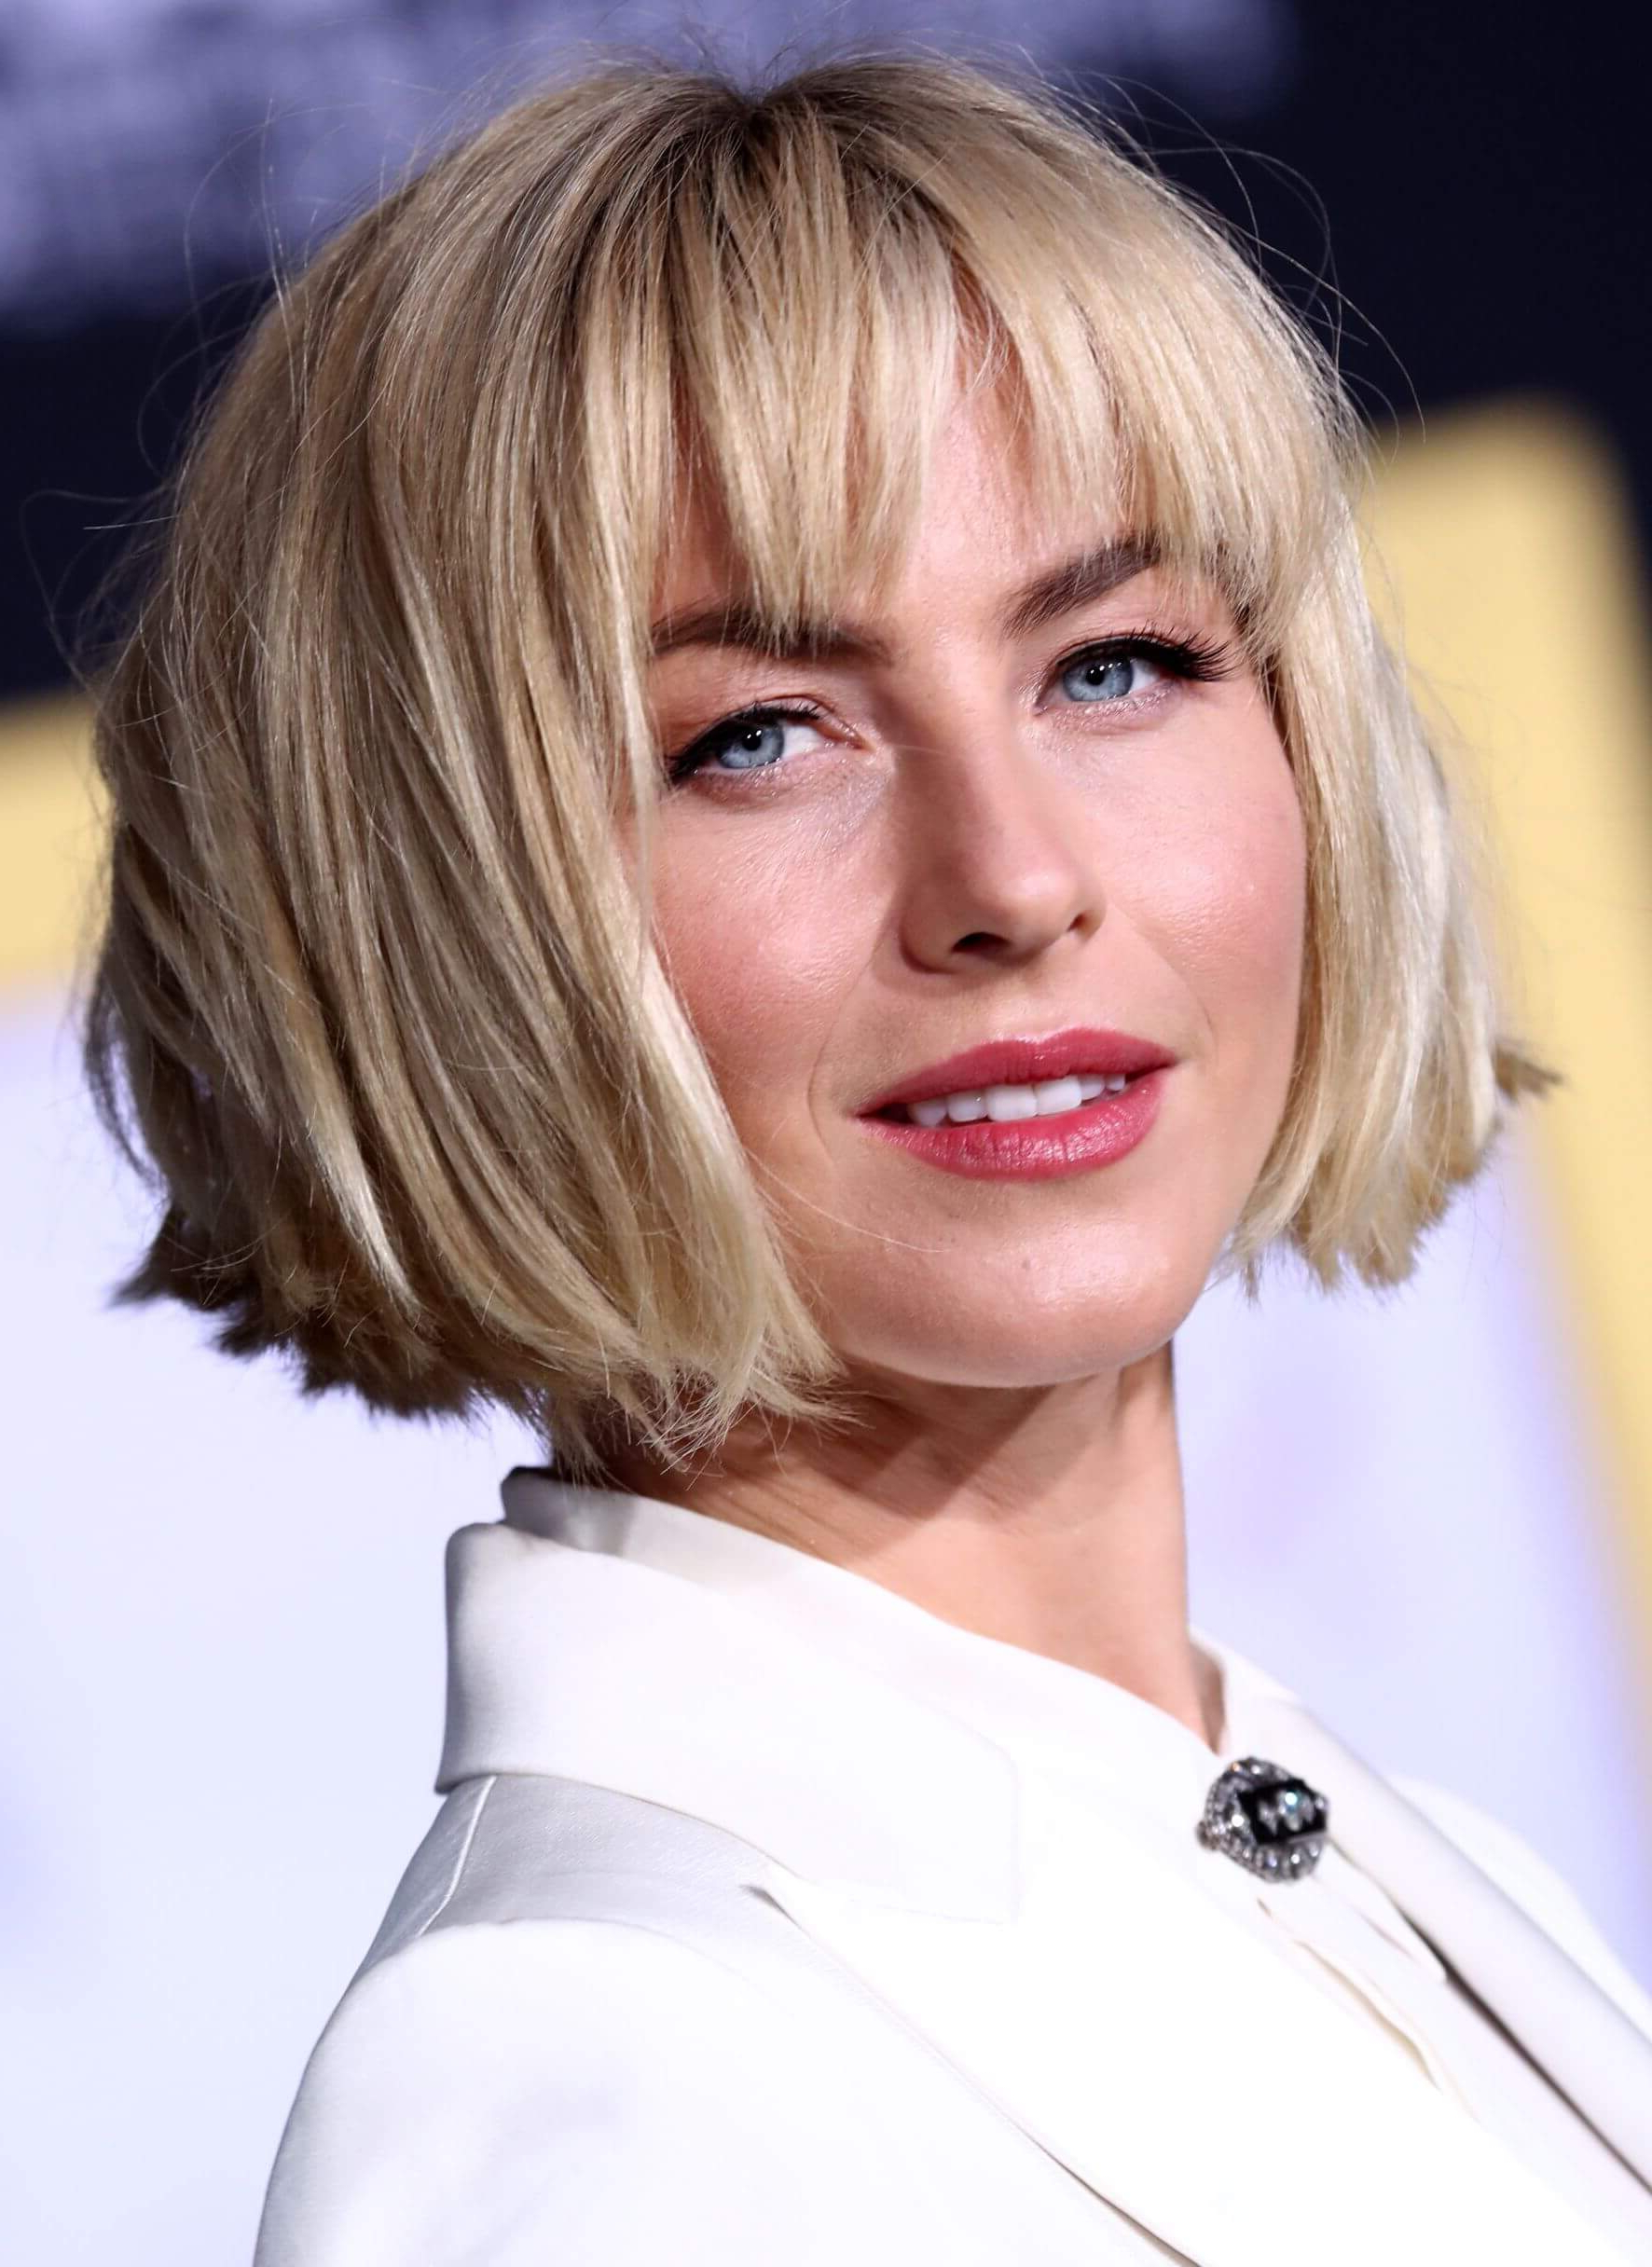 25 Blunt Bob Haircuts – Hairstyles That Are Timeless With A Within Most Recently Released Sharp And Blunt Bob Hairstyles With Bangs (View 14 of 20)